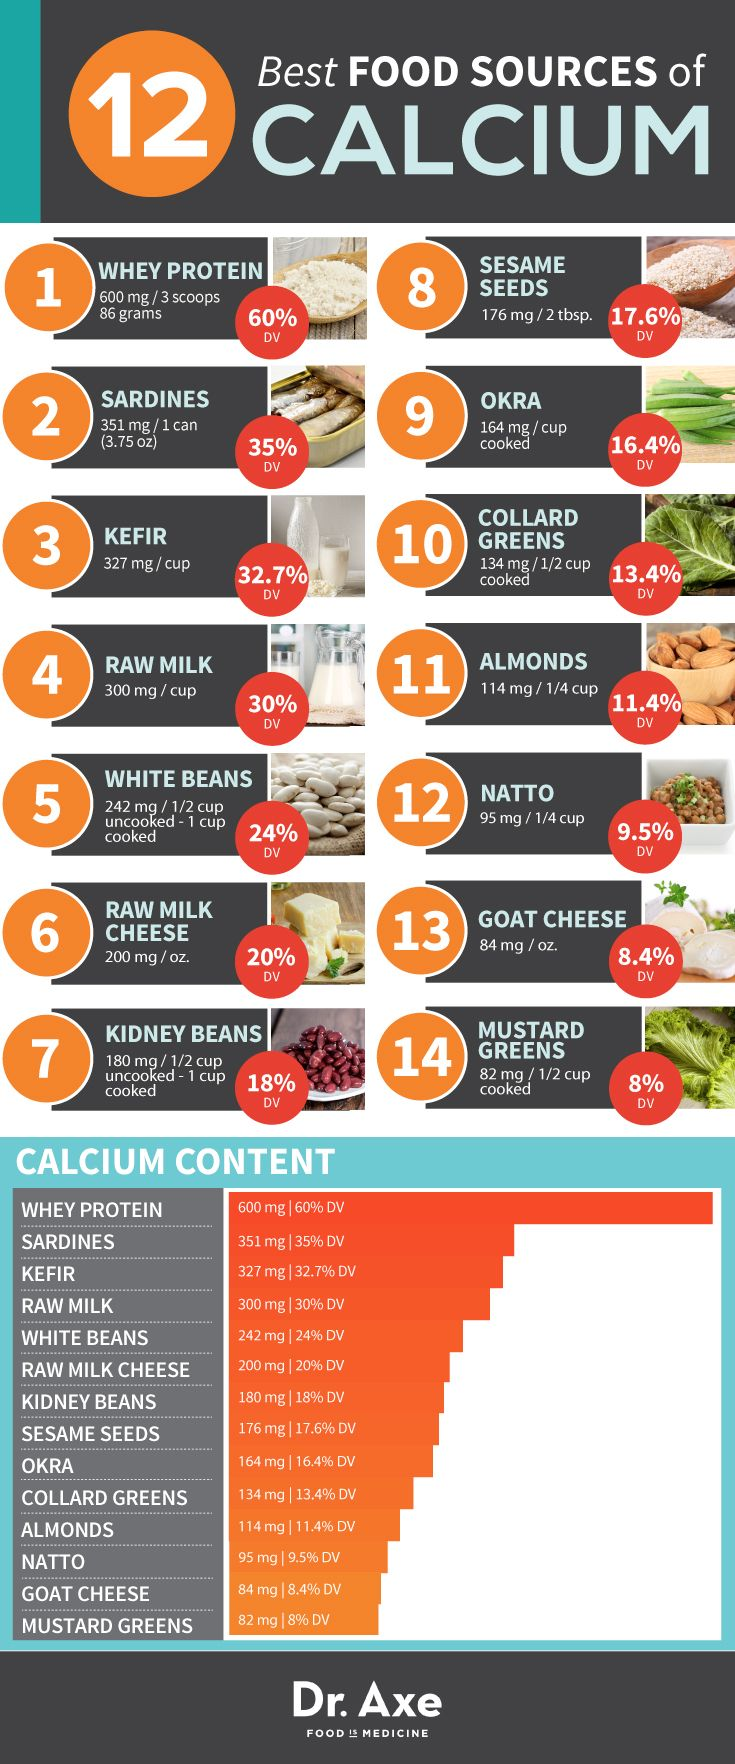 10 Symptoms of Calcium Deficiency that Everyone Ignores (And How to Fix It)